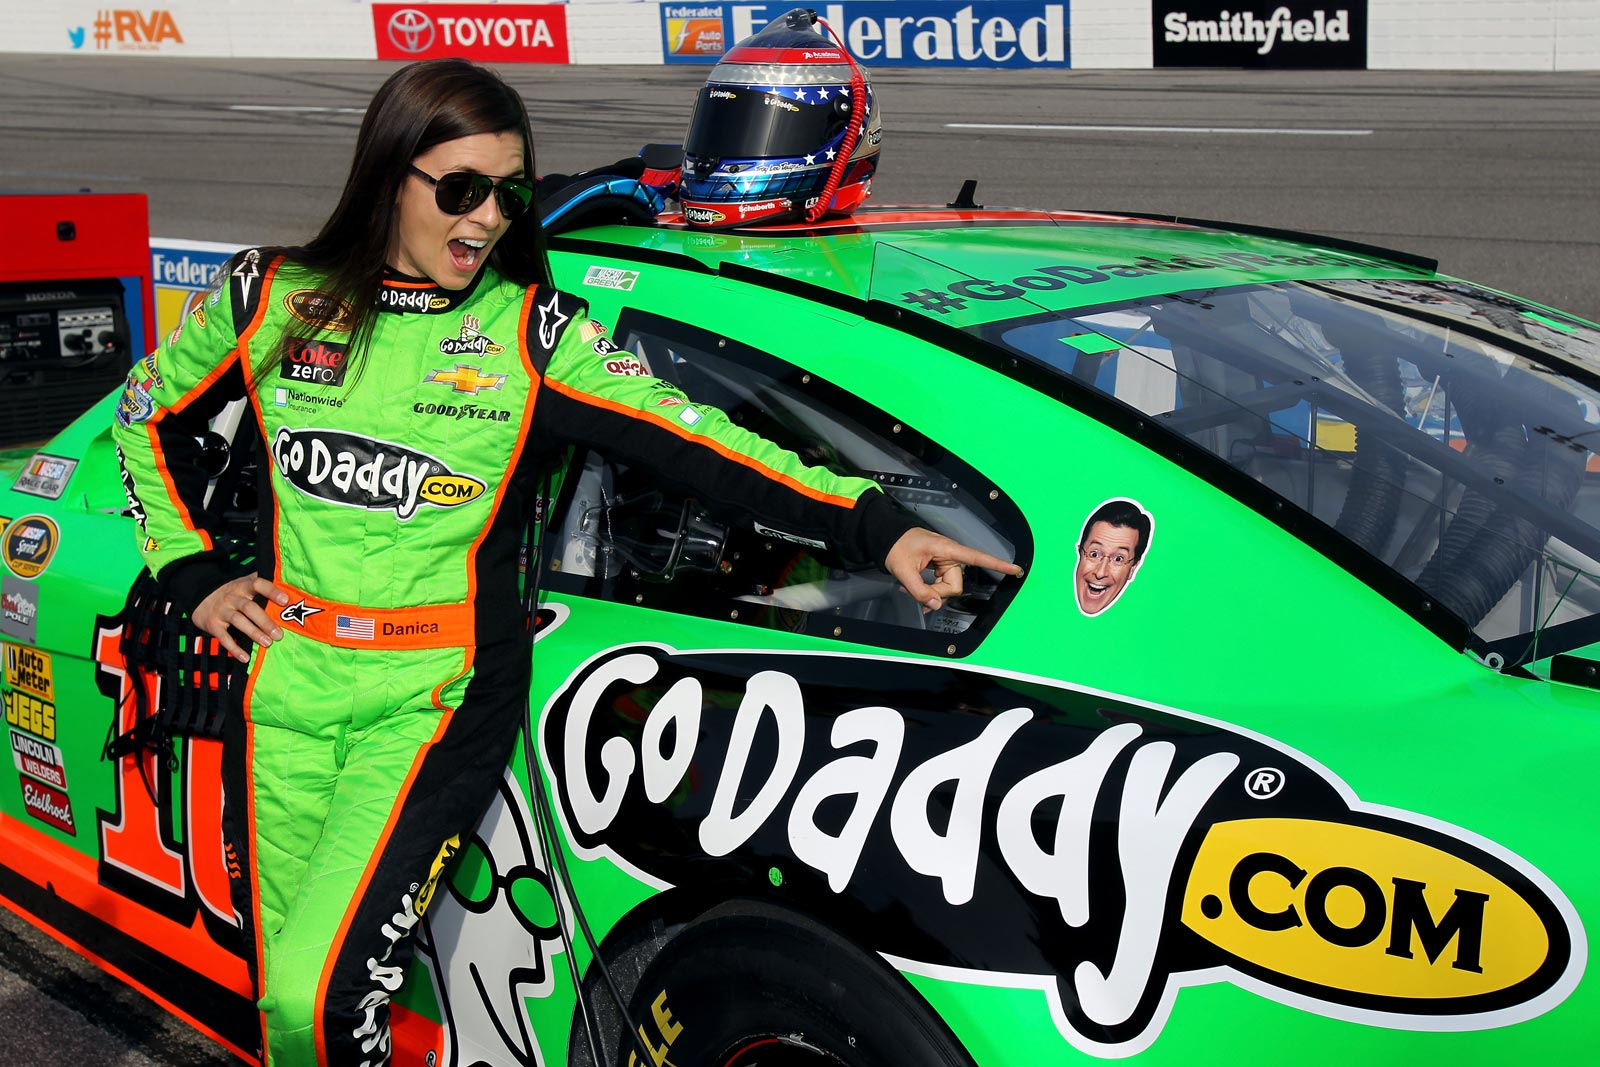 2019 MONSTER ENERGY NASCAR CUP SERIES DRIVERS